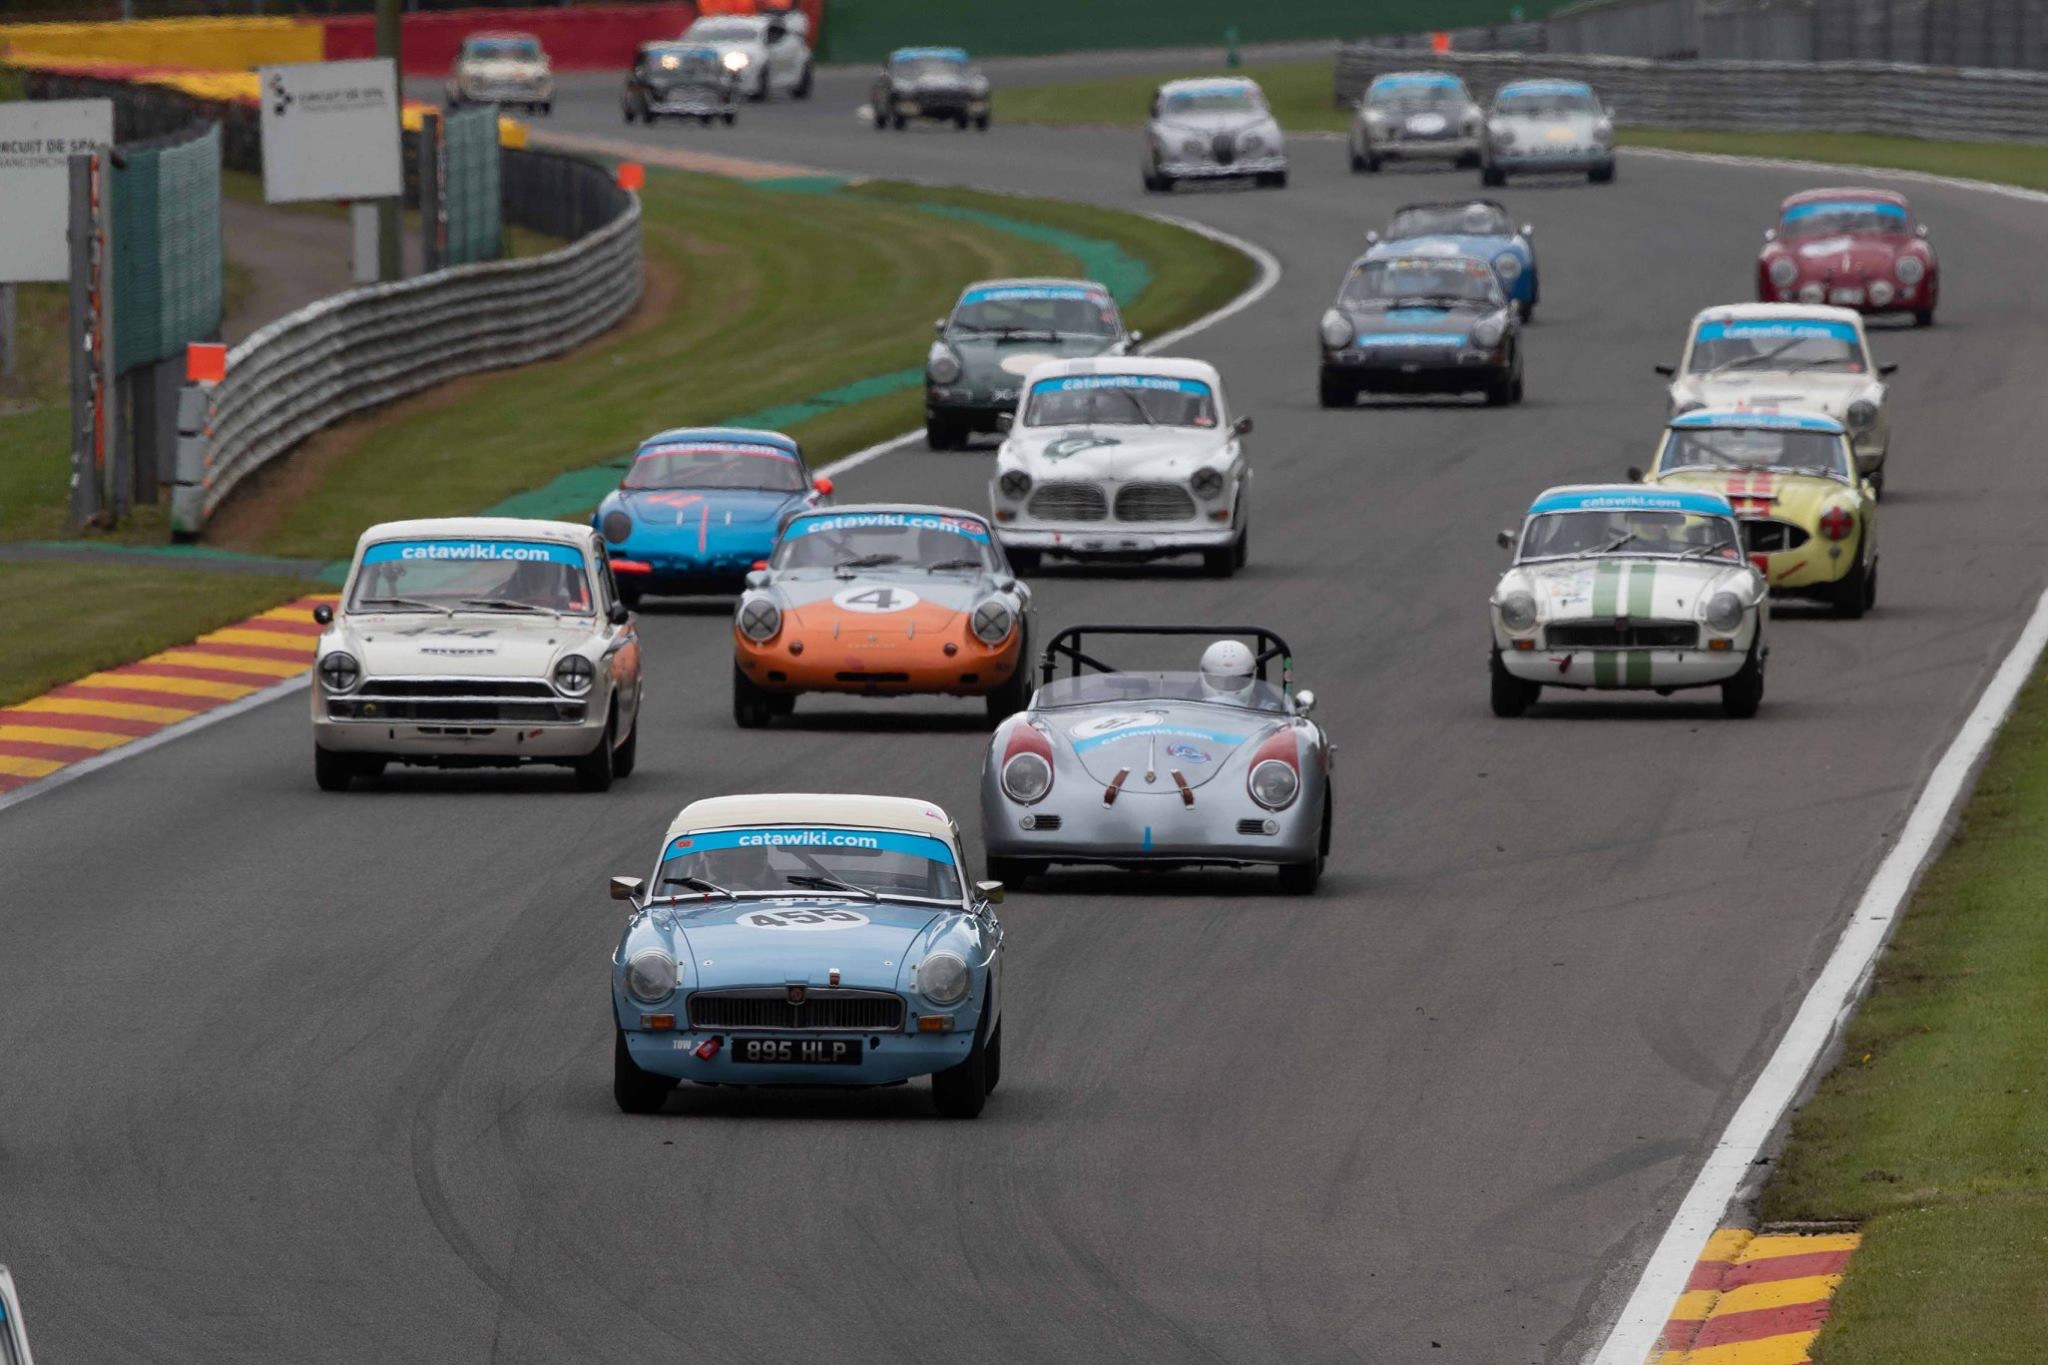 MGB Leads The Pack Spa 2018